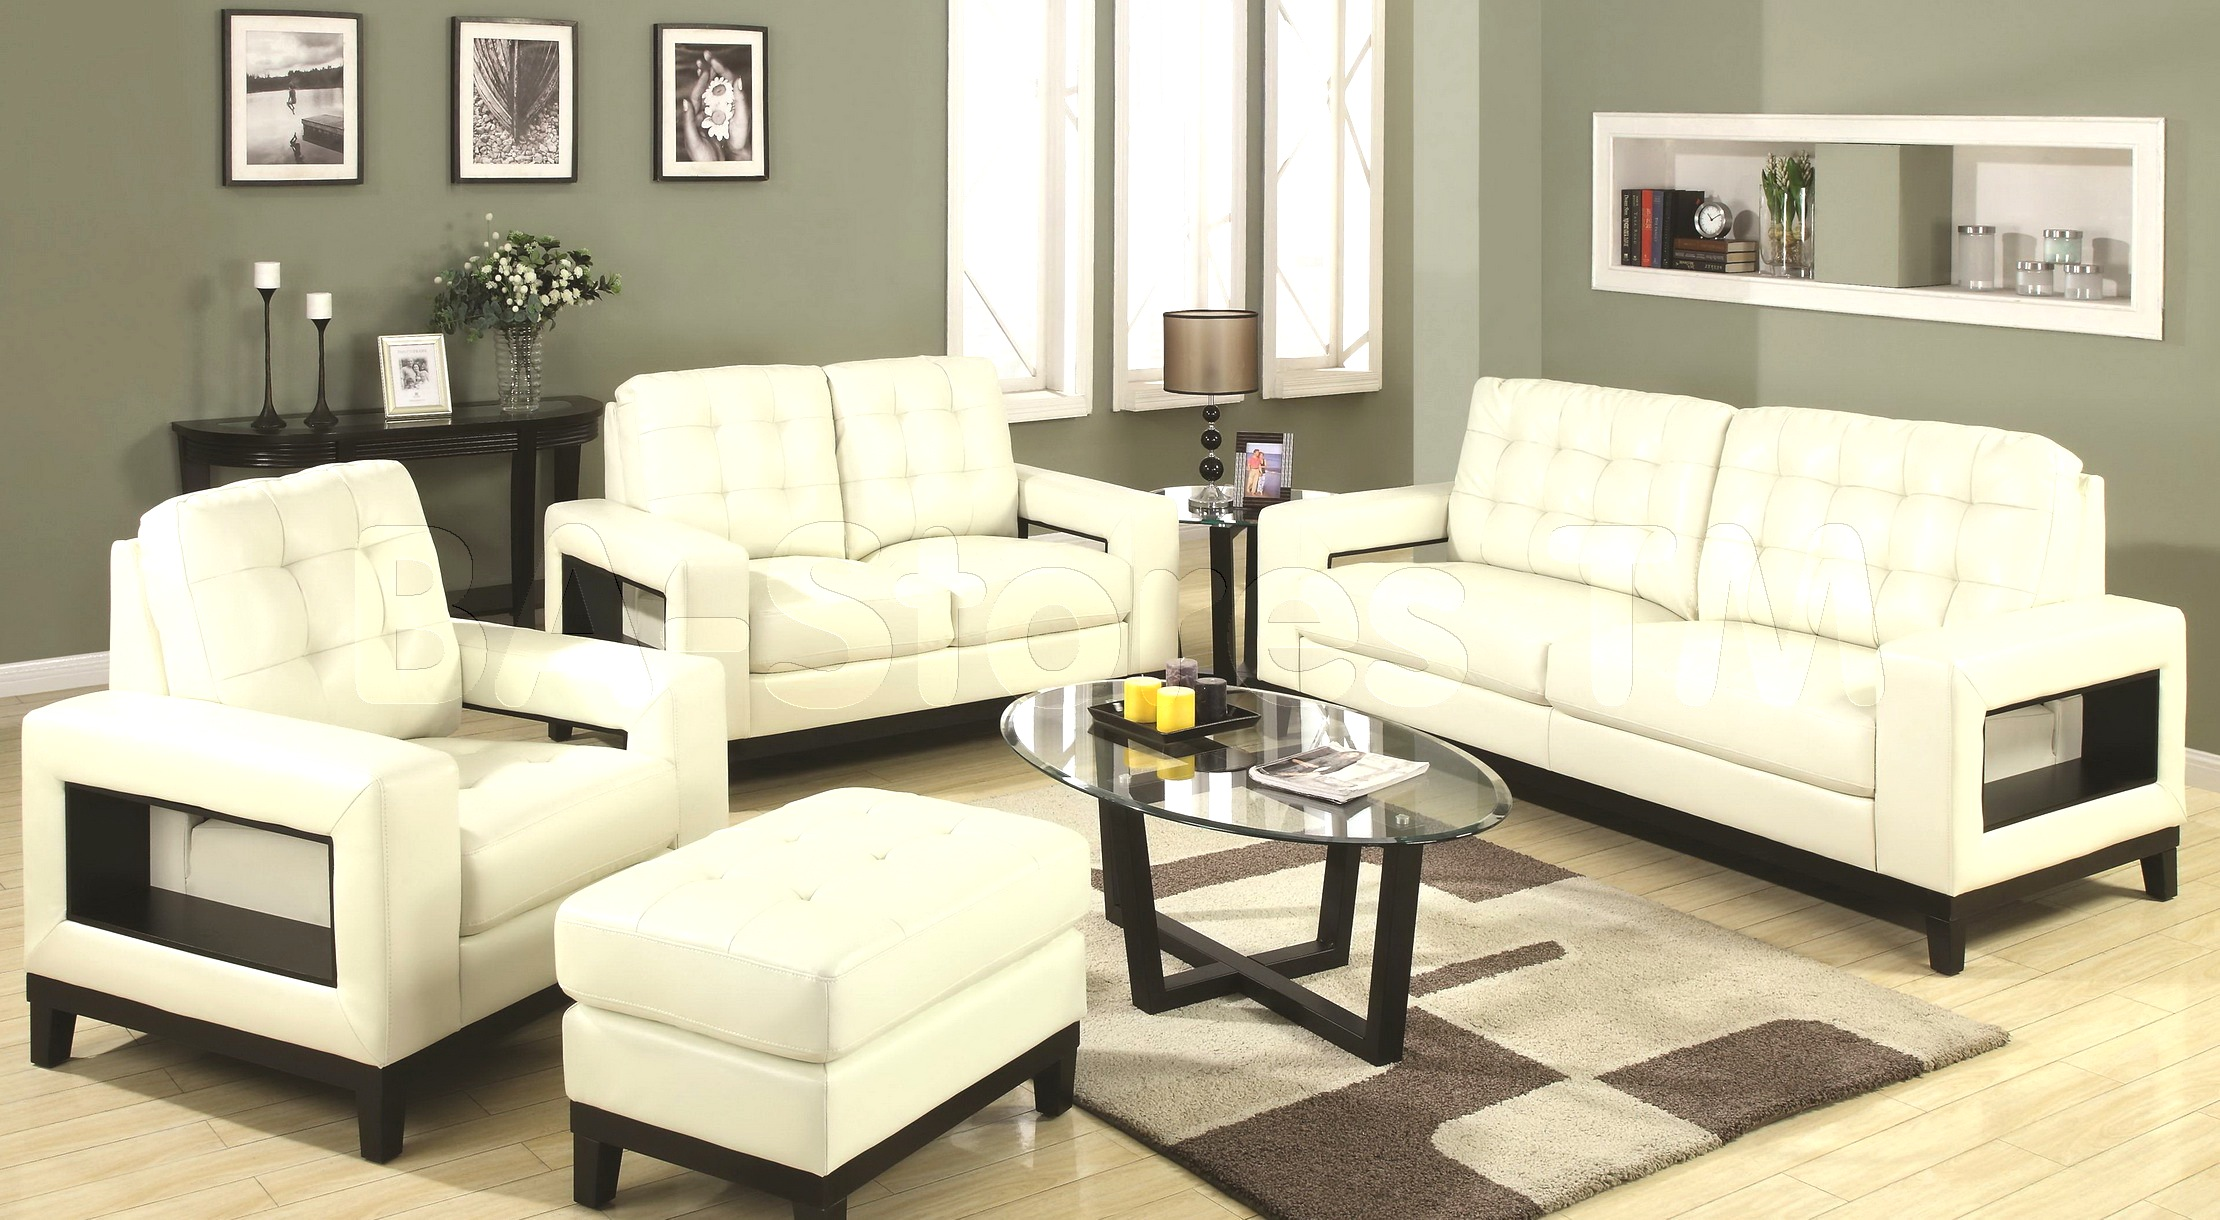 Sofa set designs home design for Modern living sofa